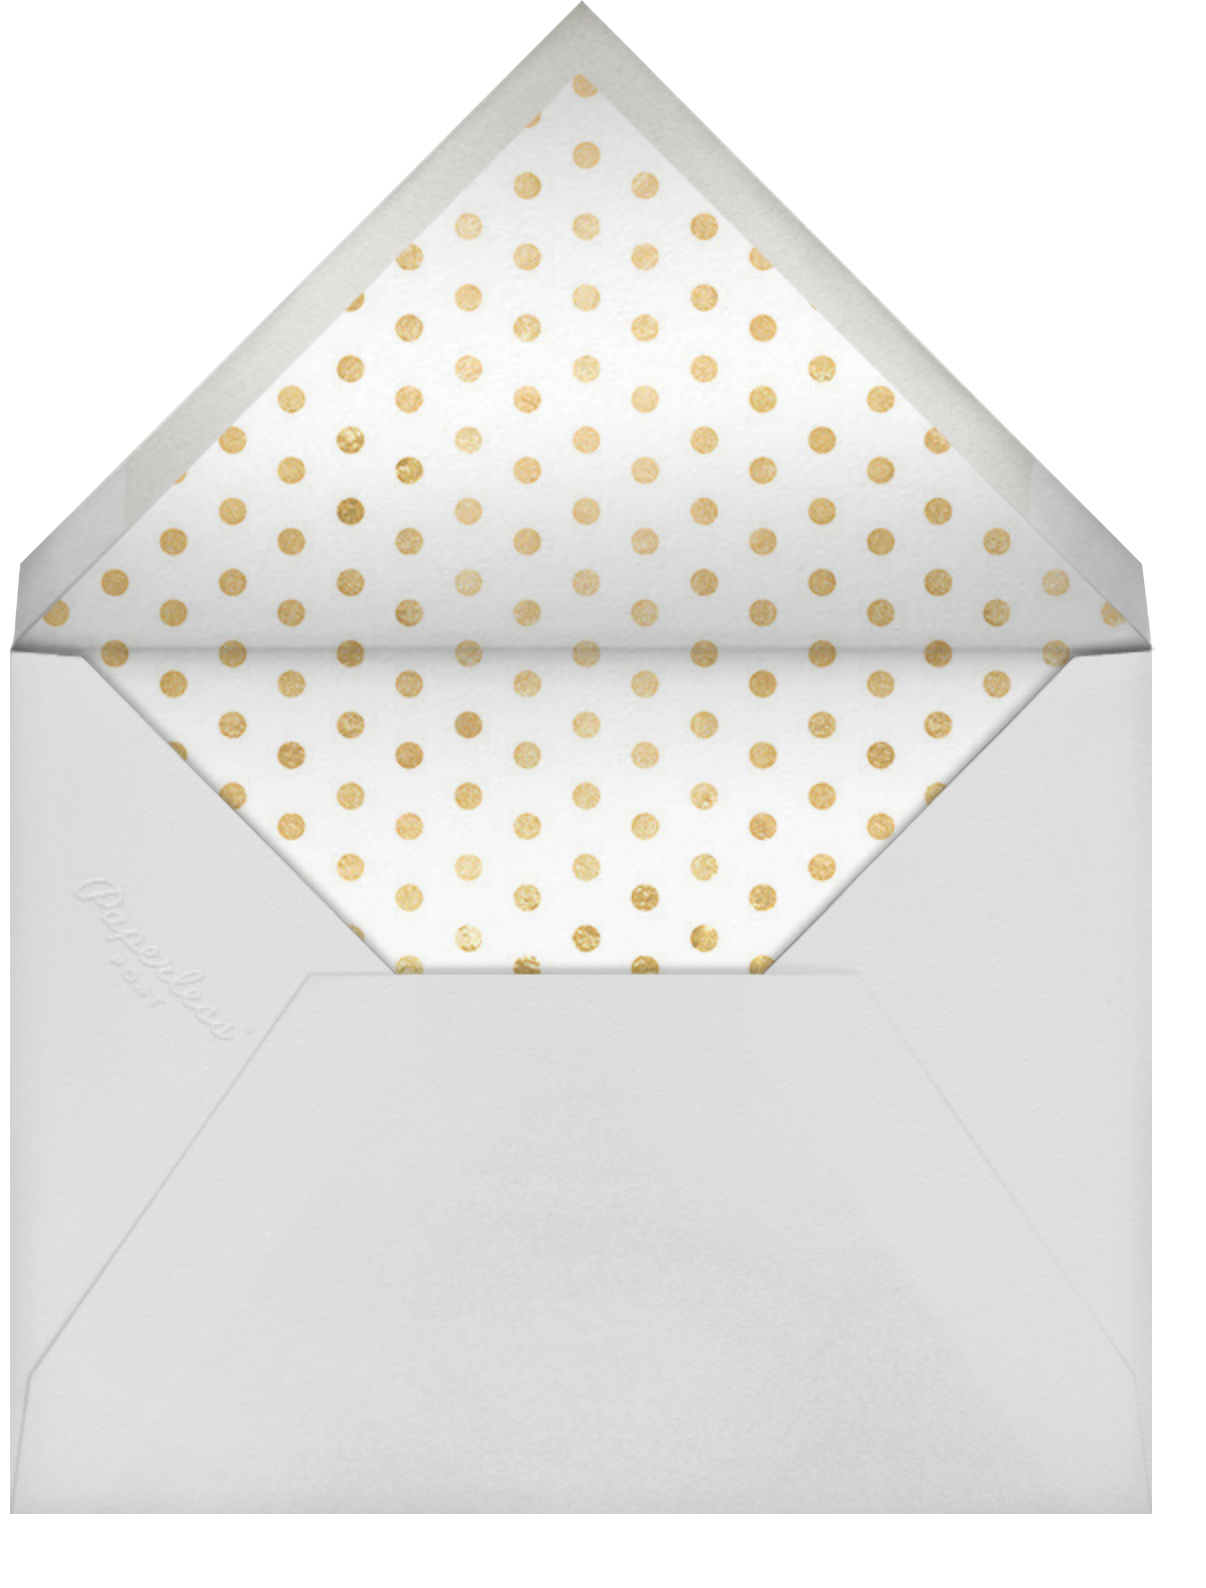 Champagne Tower - Tan - Rifle Paper Co. - General entertaining - envelope back